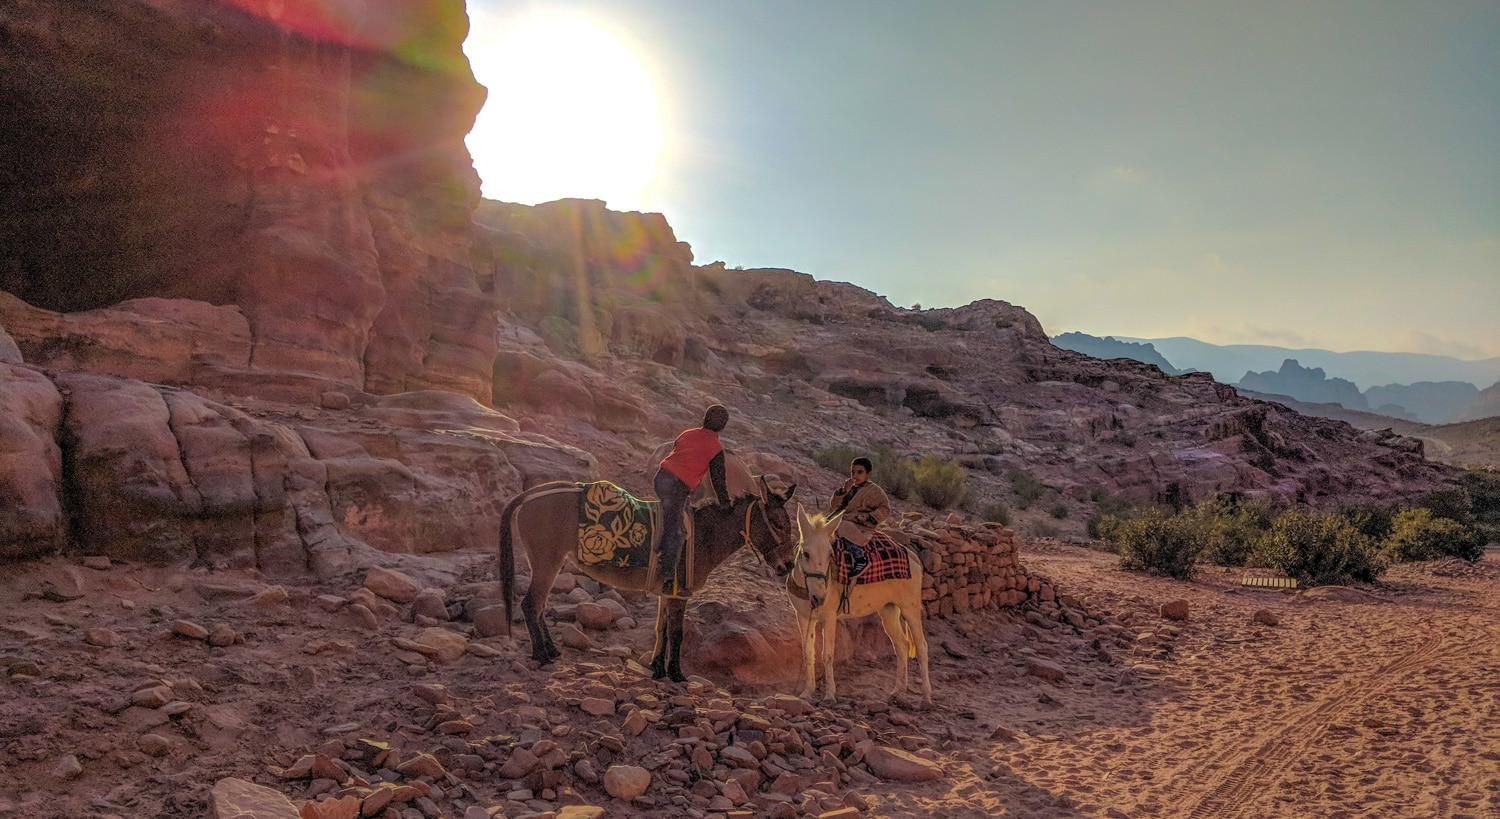 Local kids on horseback near the climb to the cathedral of petra